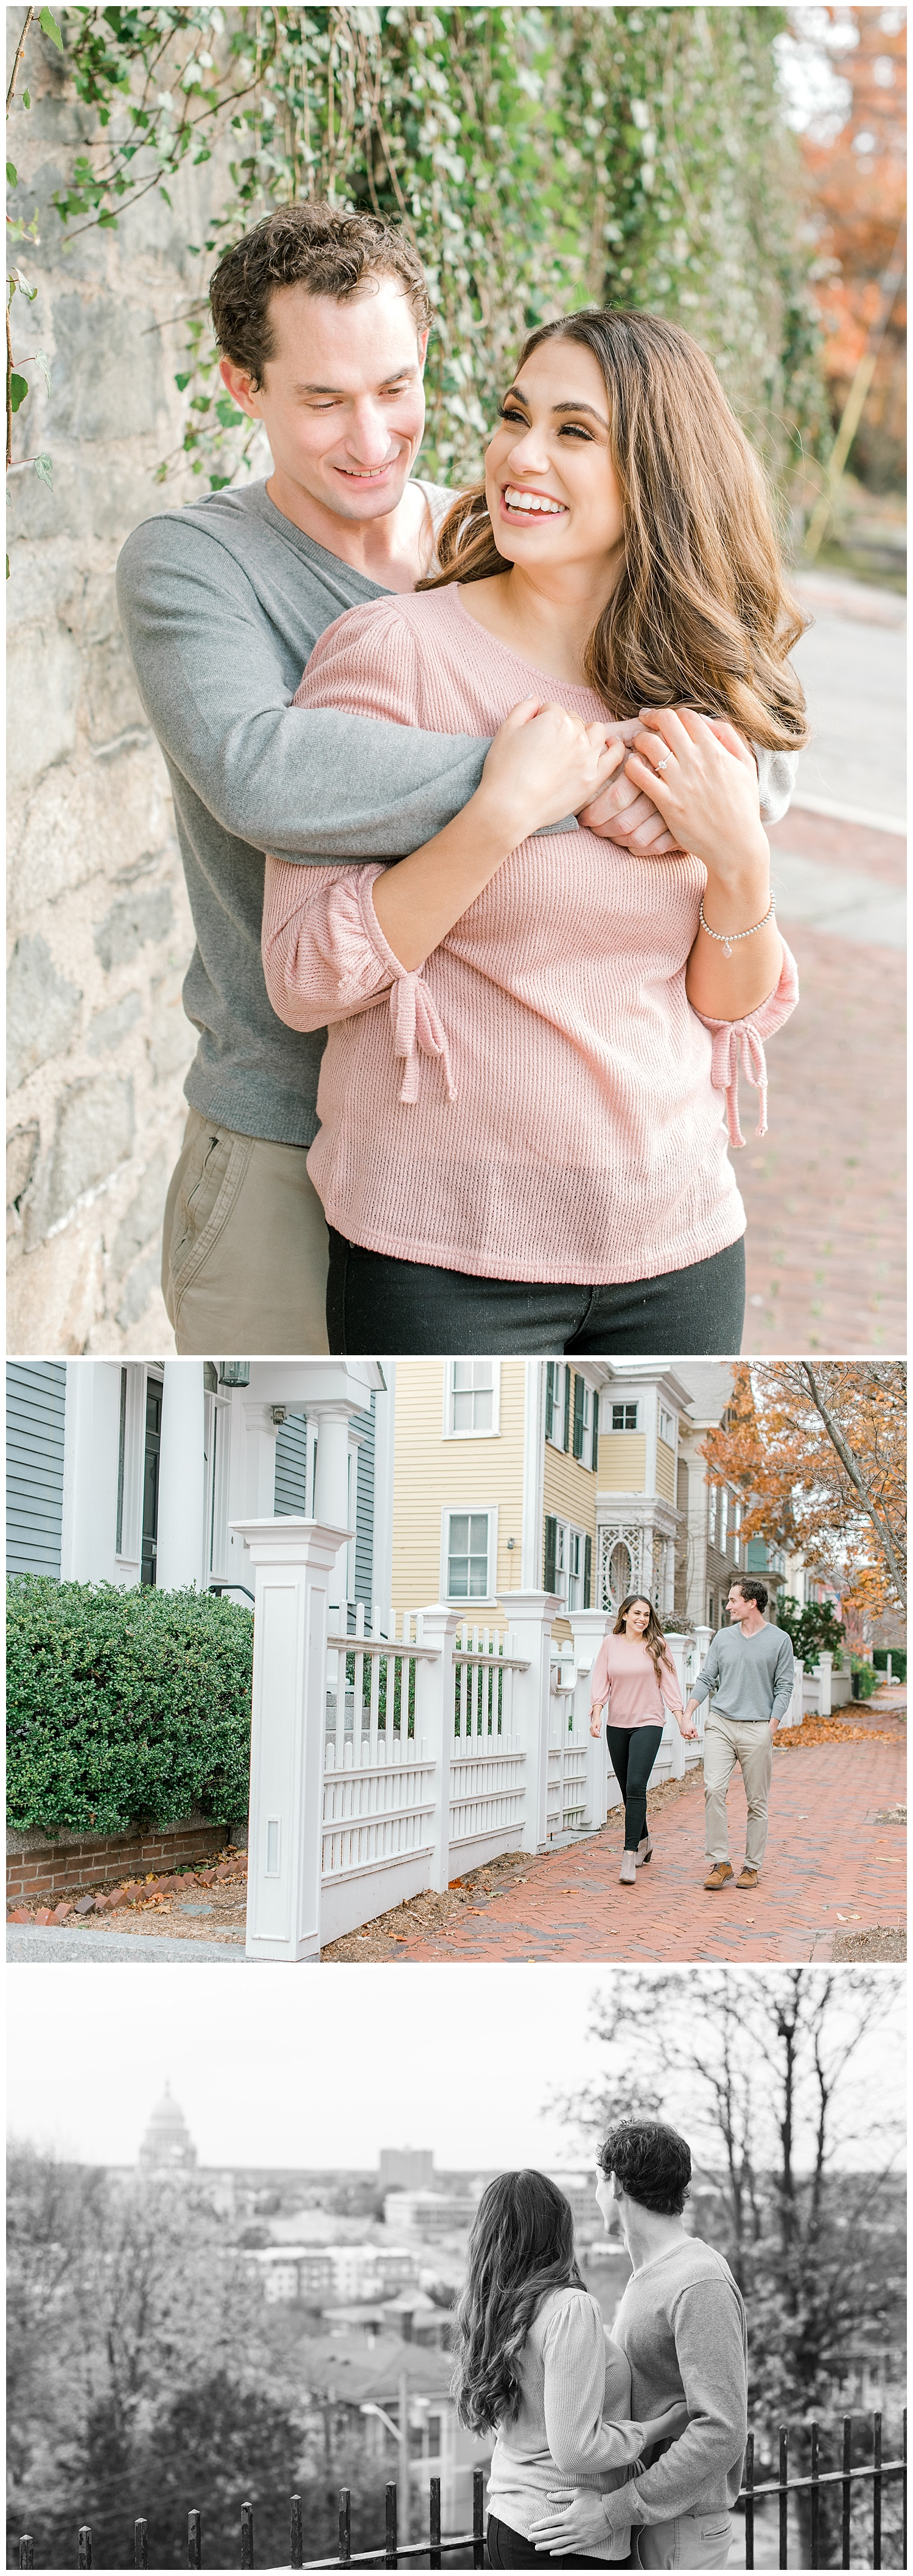 east-side-providence-fall-engagement-session-photos-9.jpg